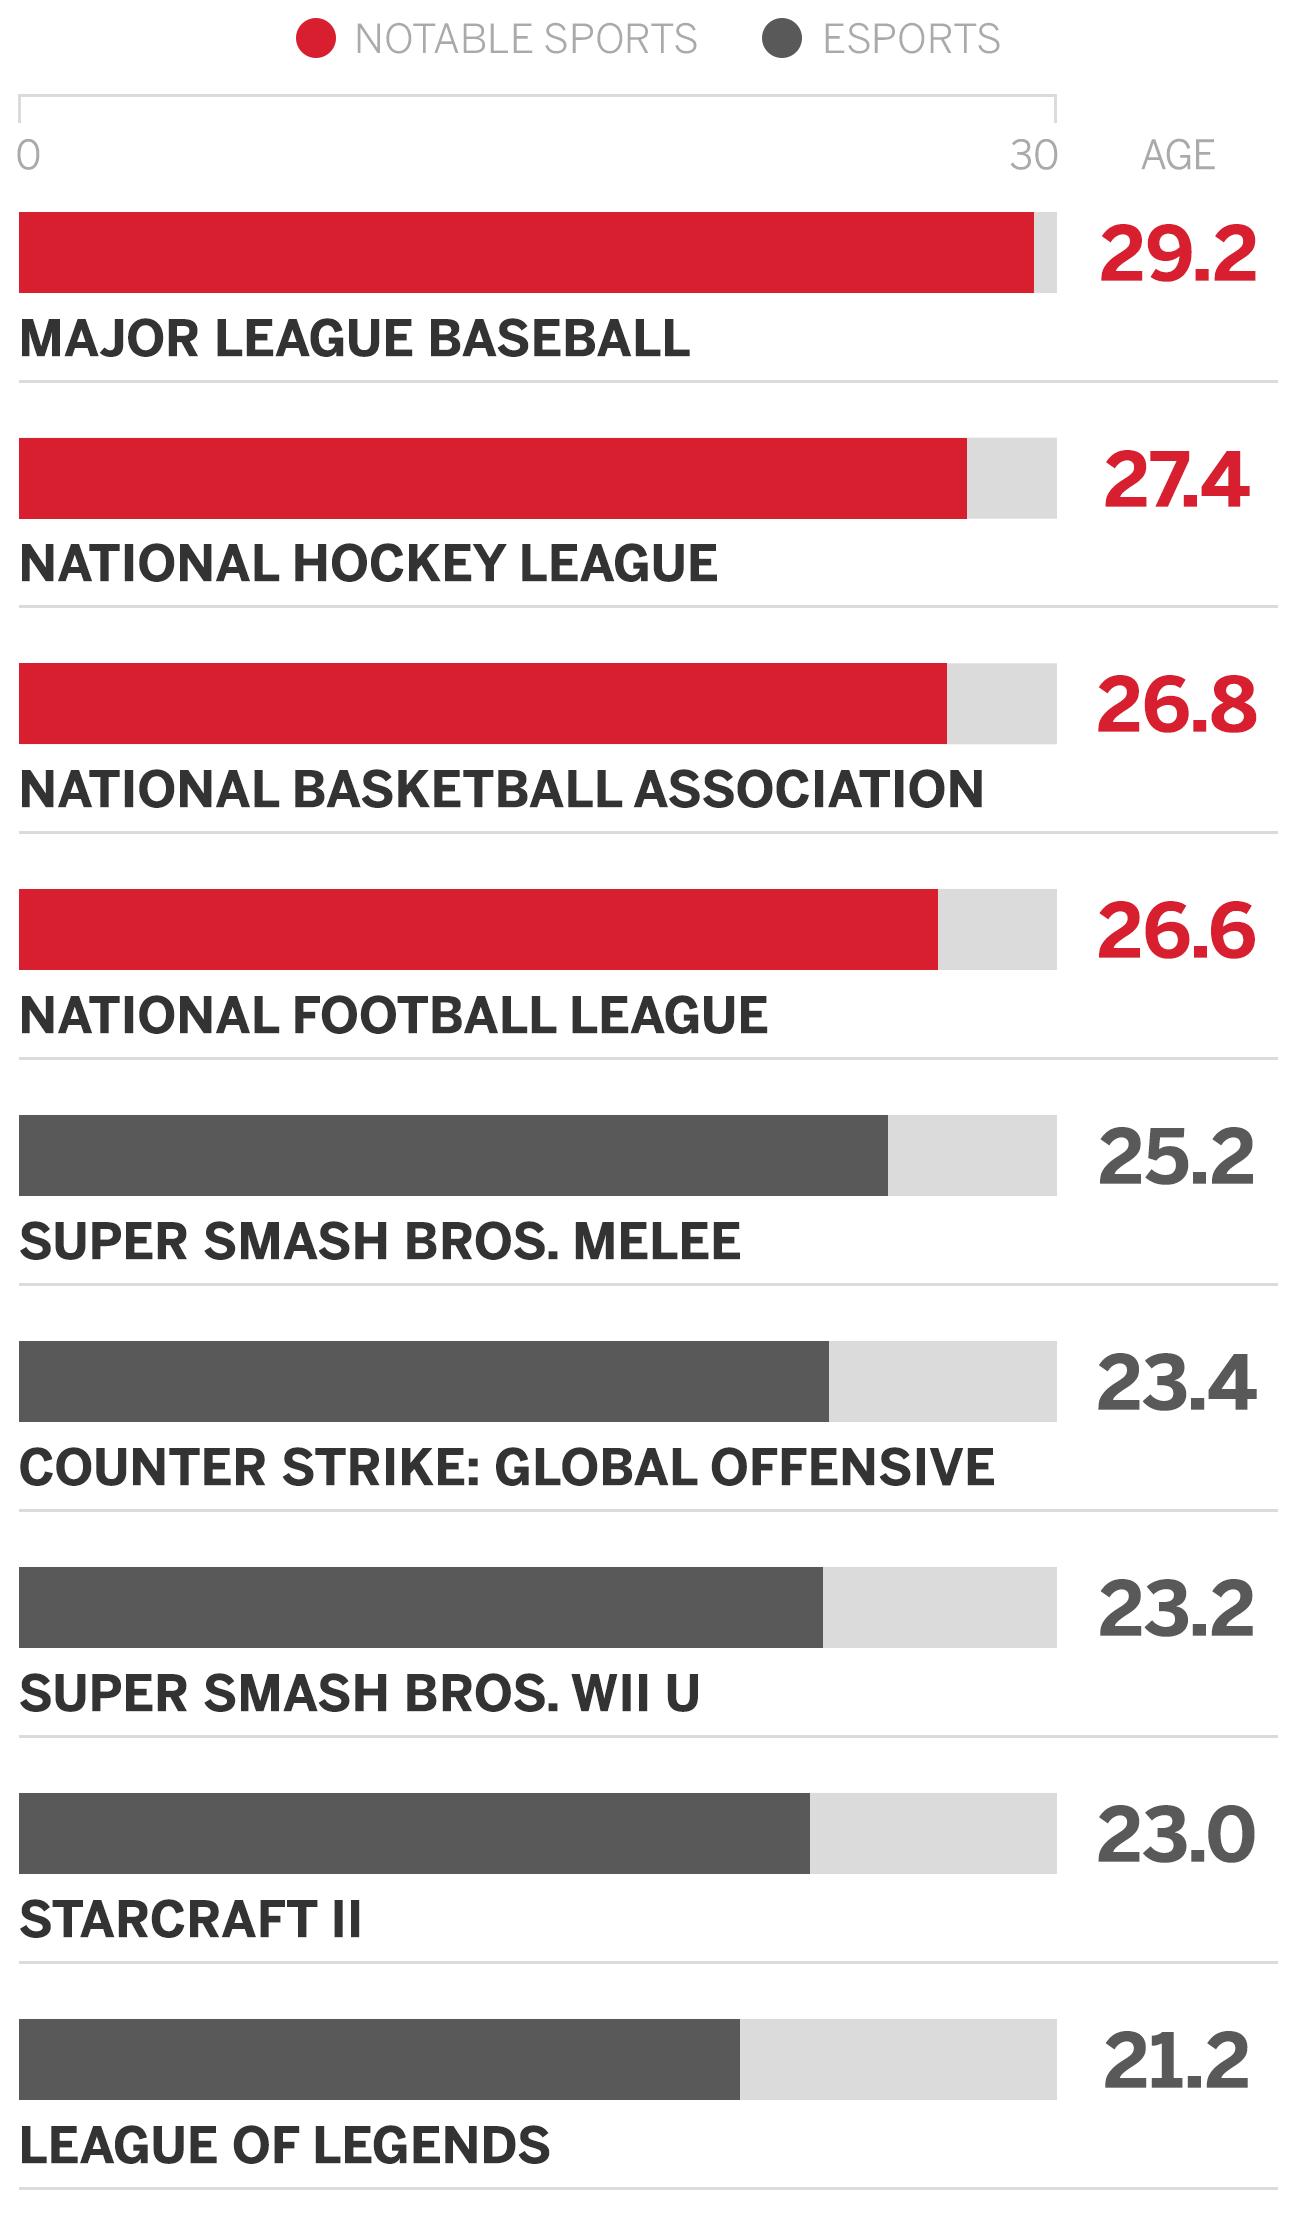 The Average Age In Esports Versus Nfl Nba Mlb Nhl